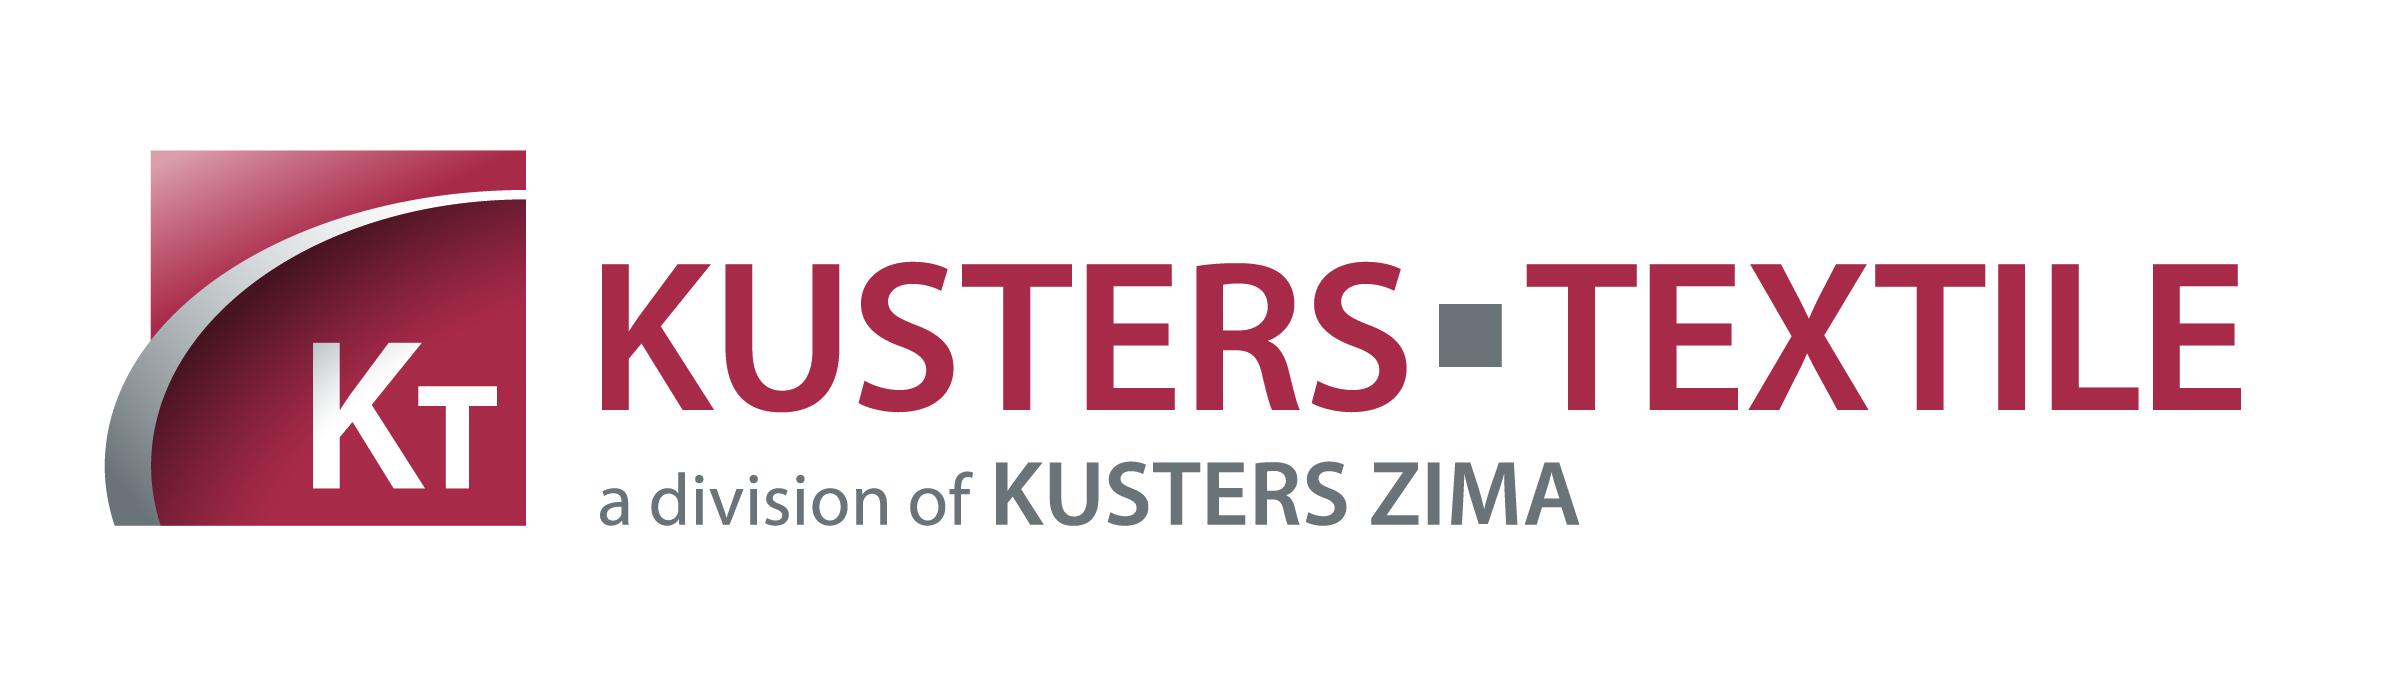 Kusters Textile